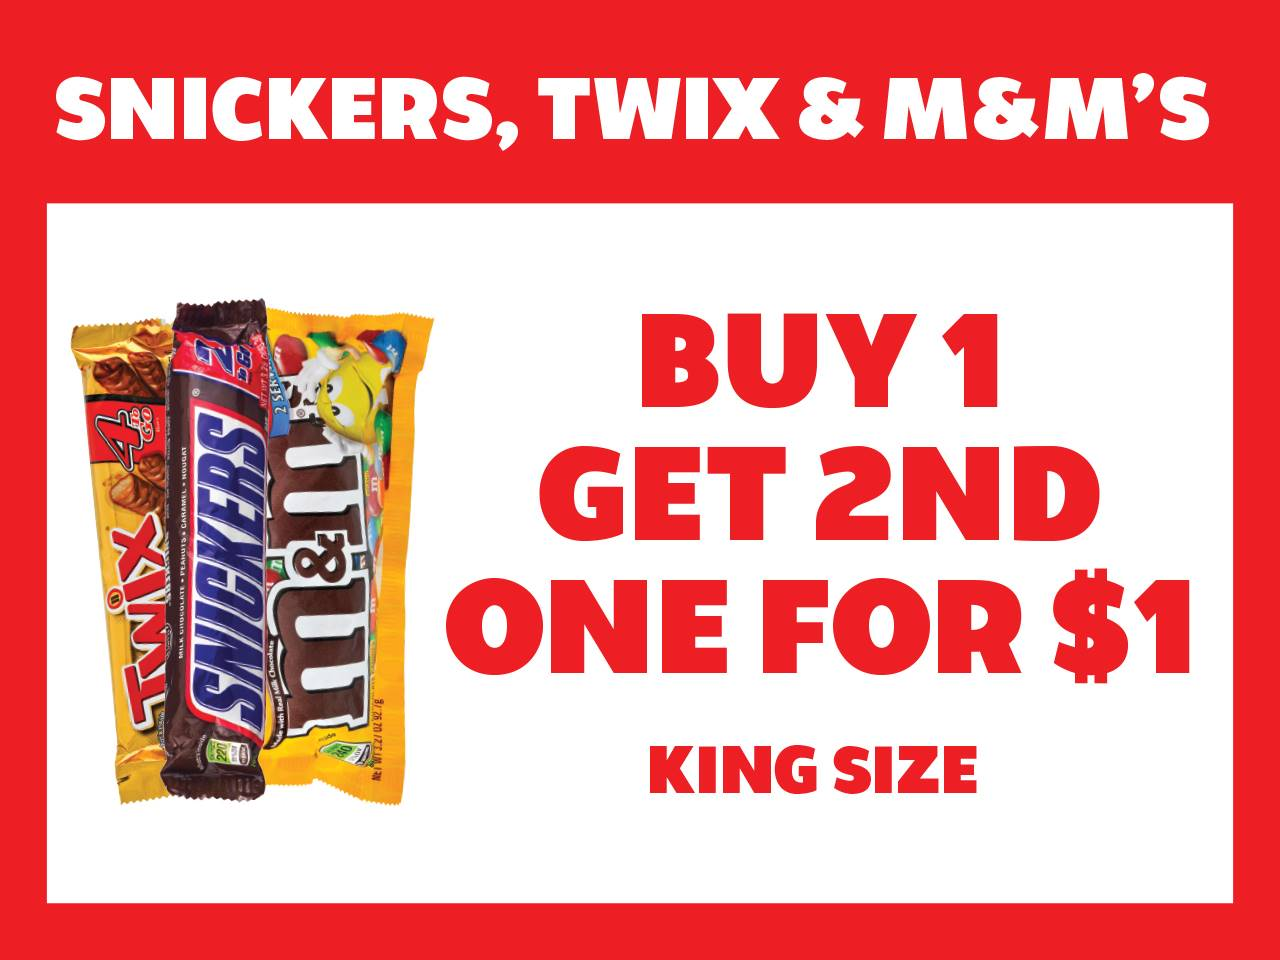 King Size Snickers, Twix, or M&M's Buy 1 Get 2nd for $1